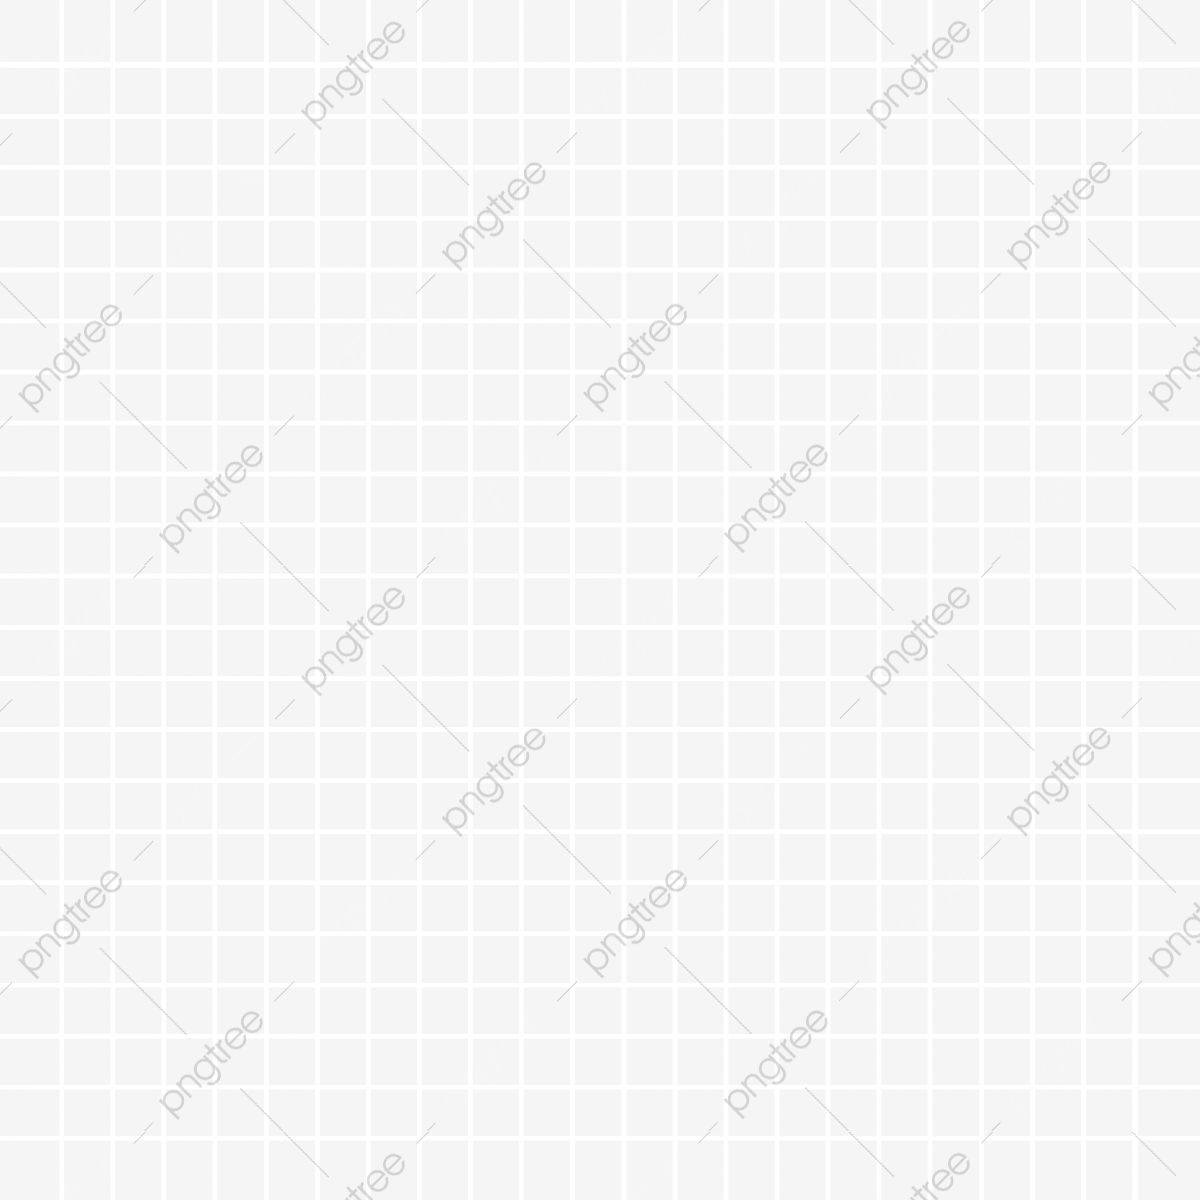 White Grid Cartoon Png Material White Mesh Grid Simple Grid Png Transparent Clipart Image And Psd File For Free Download Cartoons Png Clip Art White Mesh